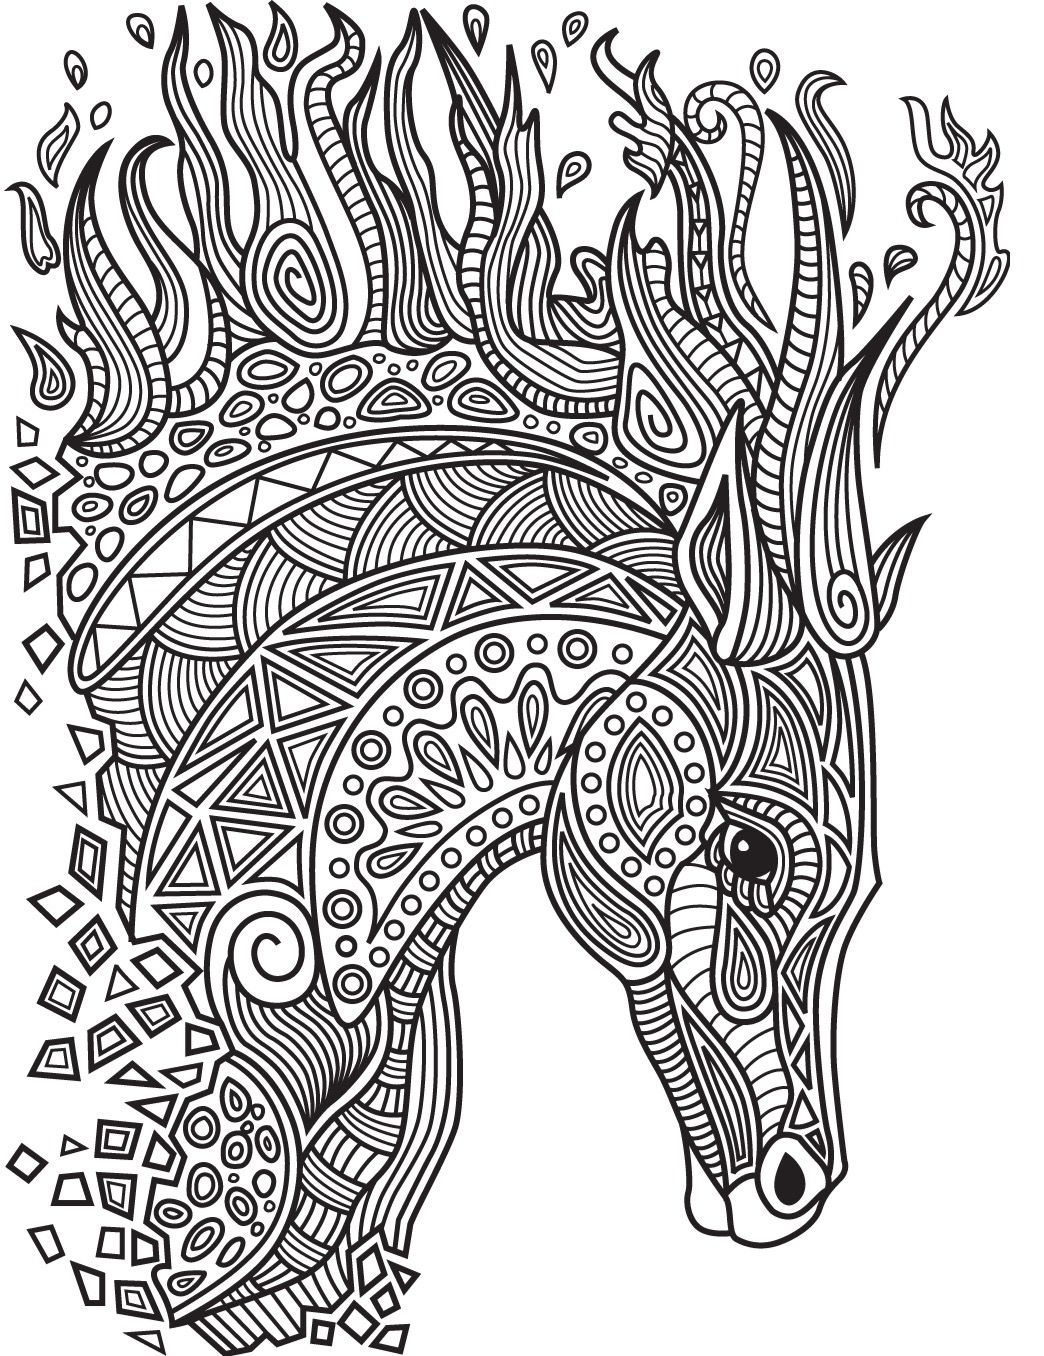 horses colorish coloring book app for adults mandala relax by goodsofttech zentangles. Black Bedroom Furniture Sets. Home Design Ideas